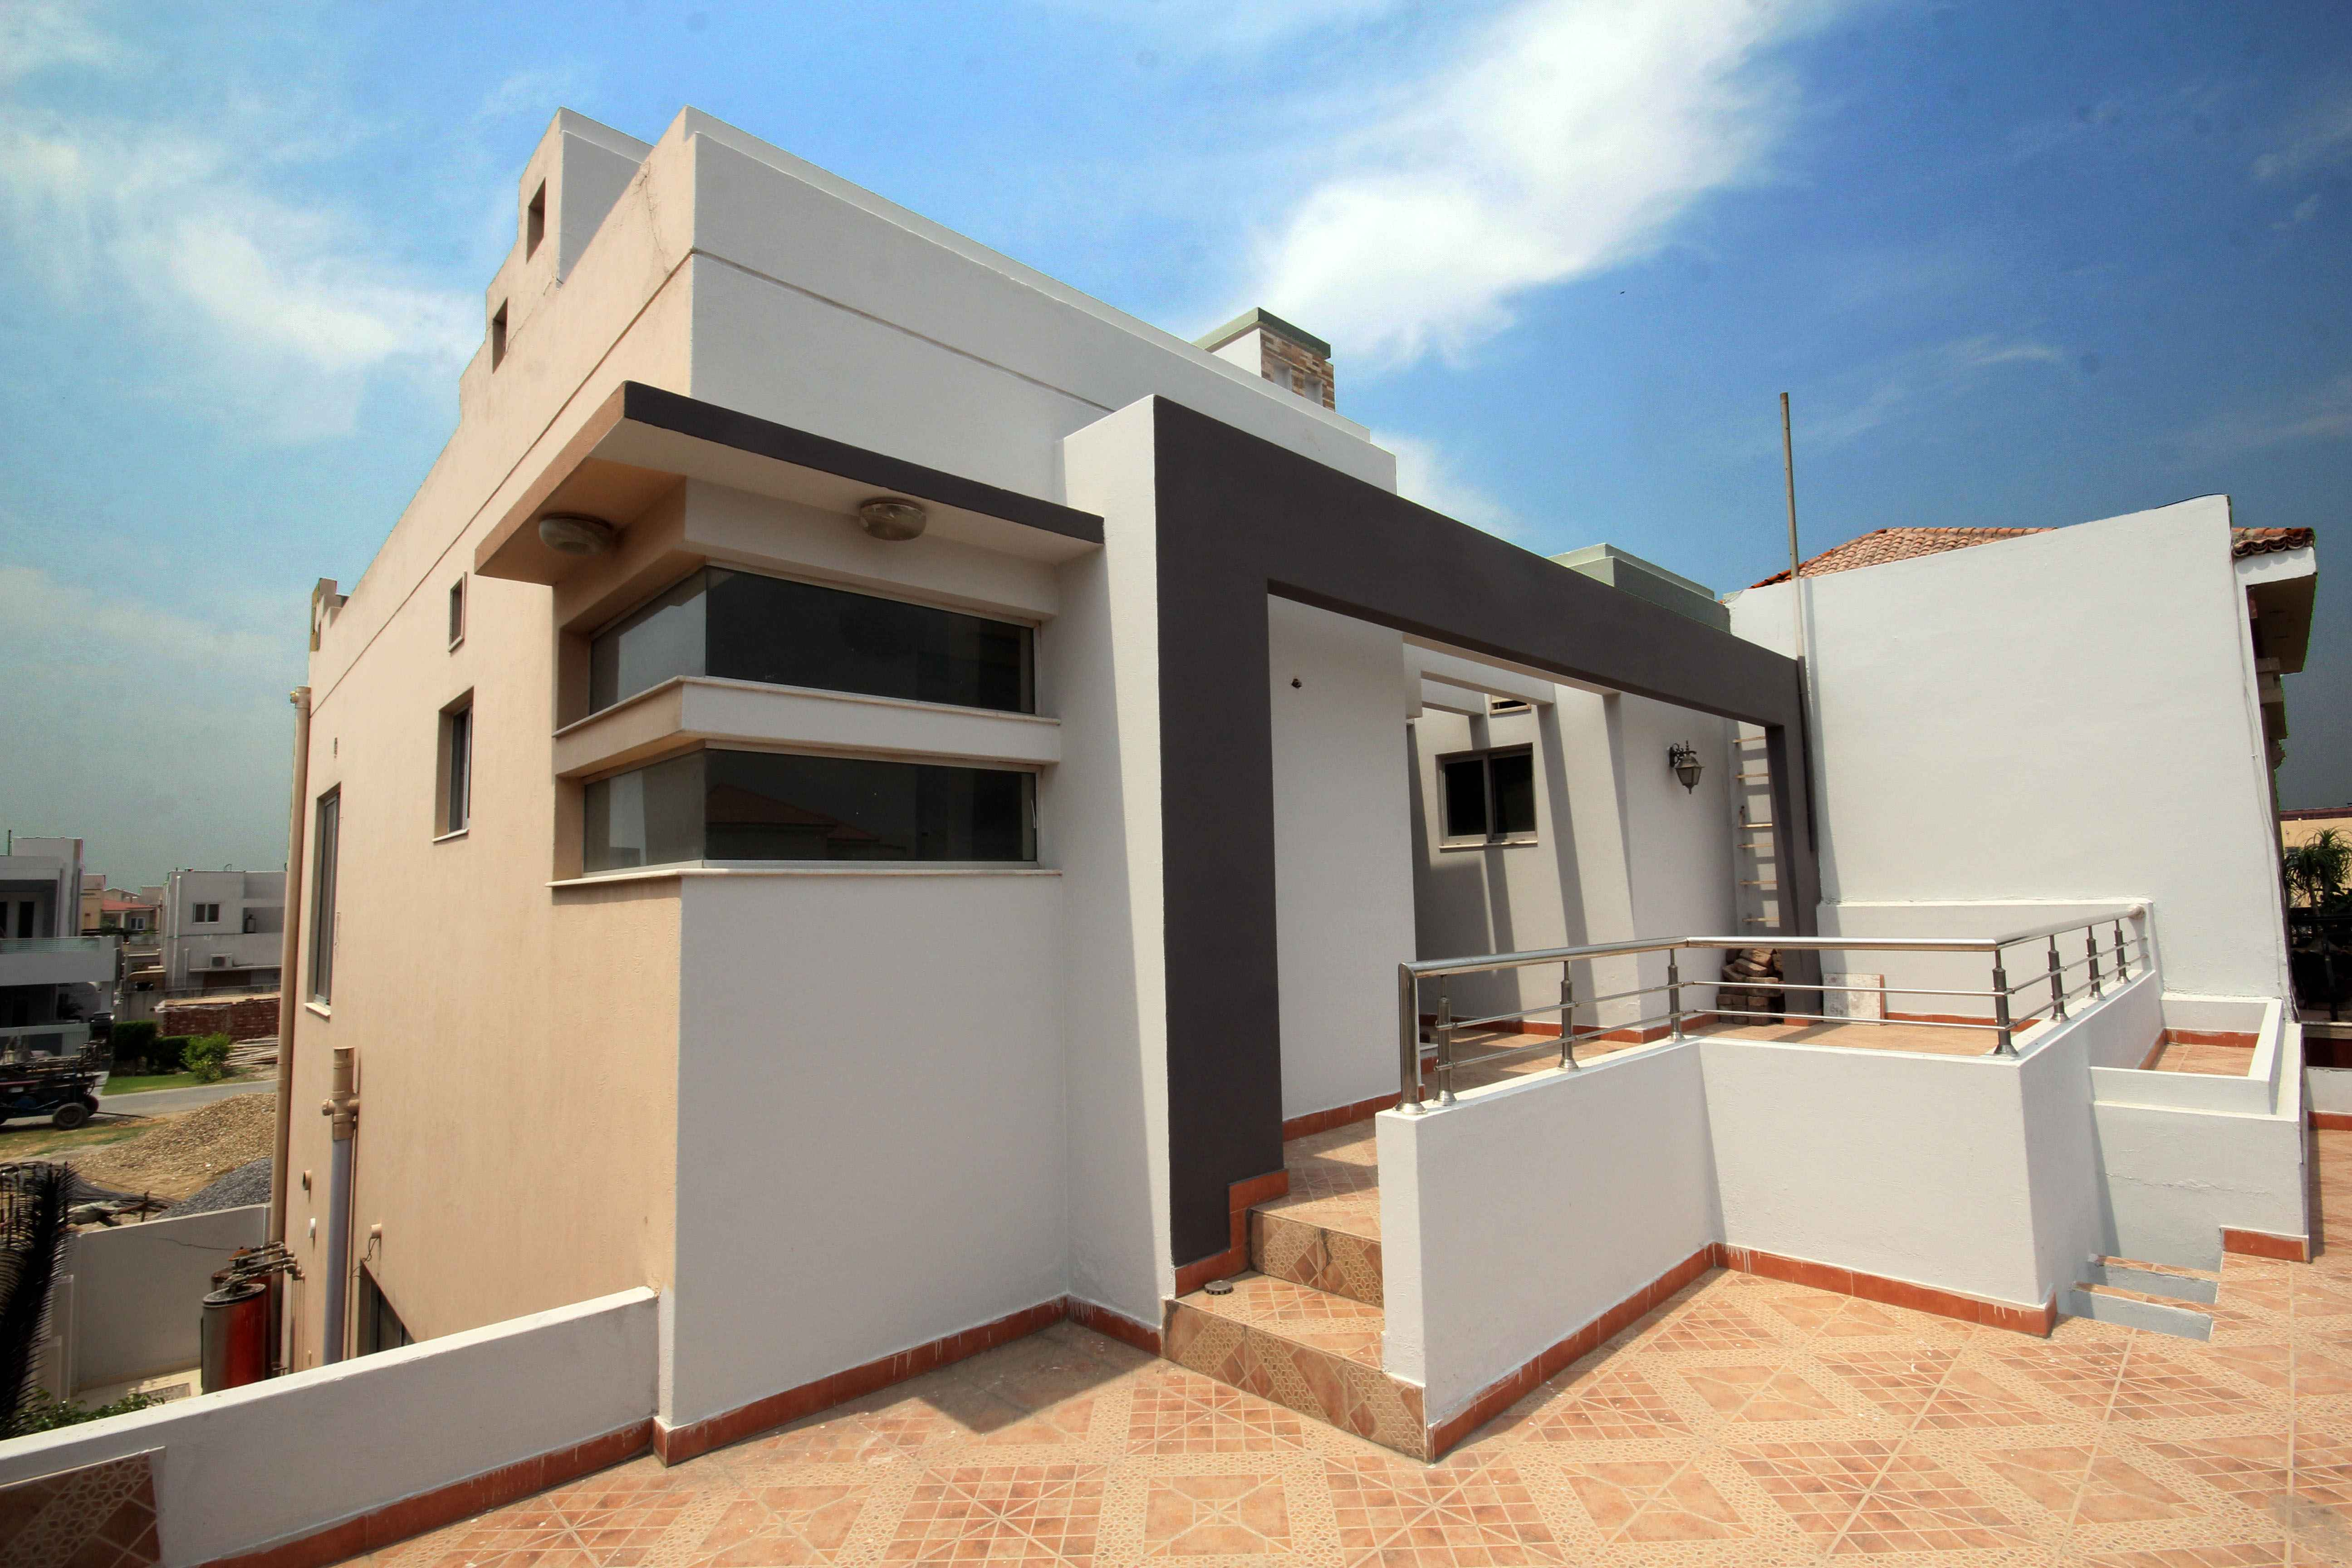 10 Marla House with Basement for Rent in Phase 5 DHA